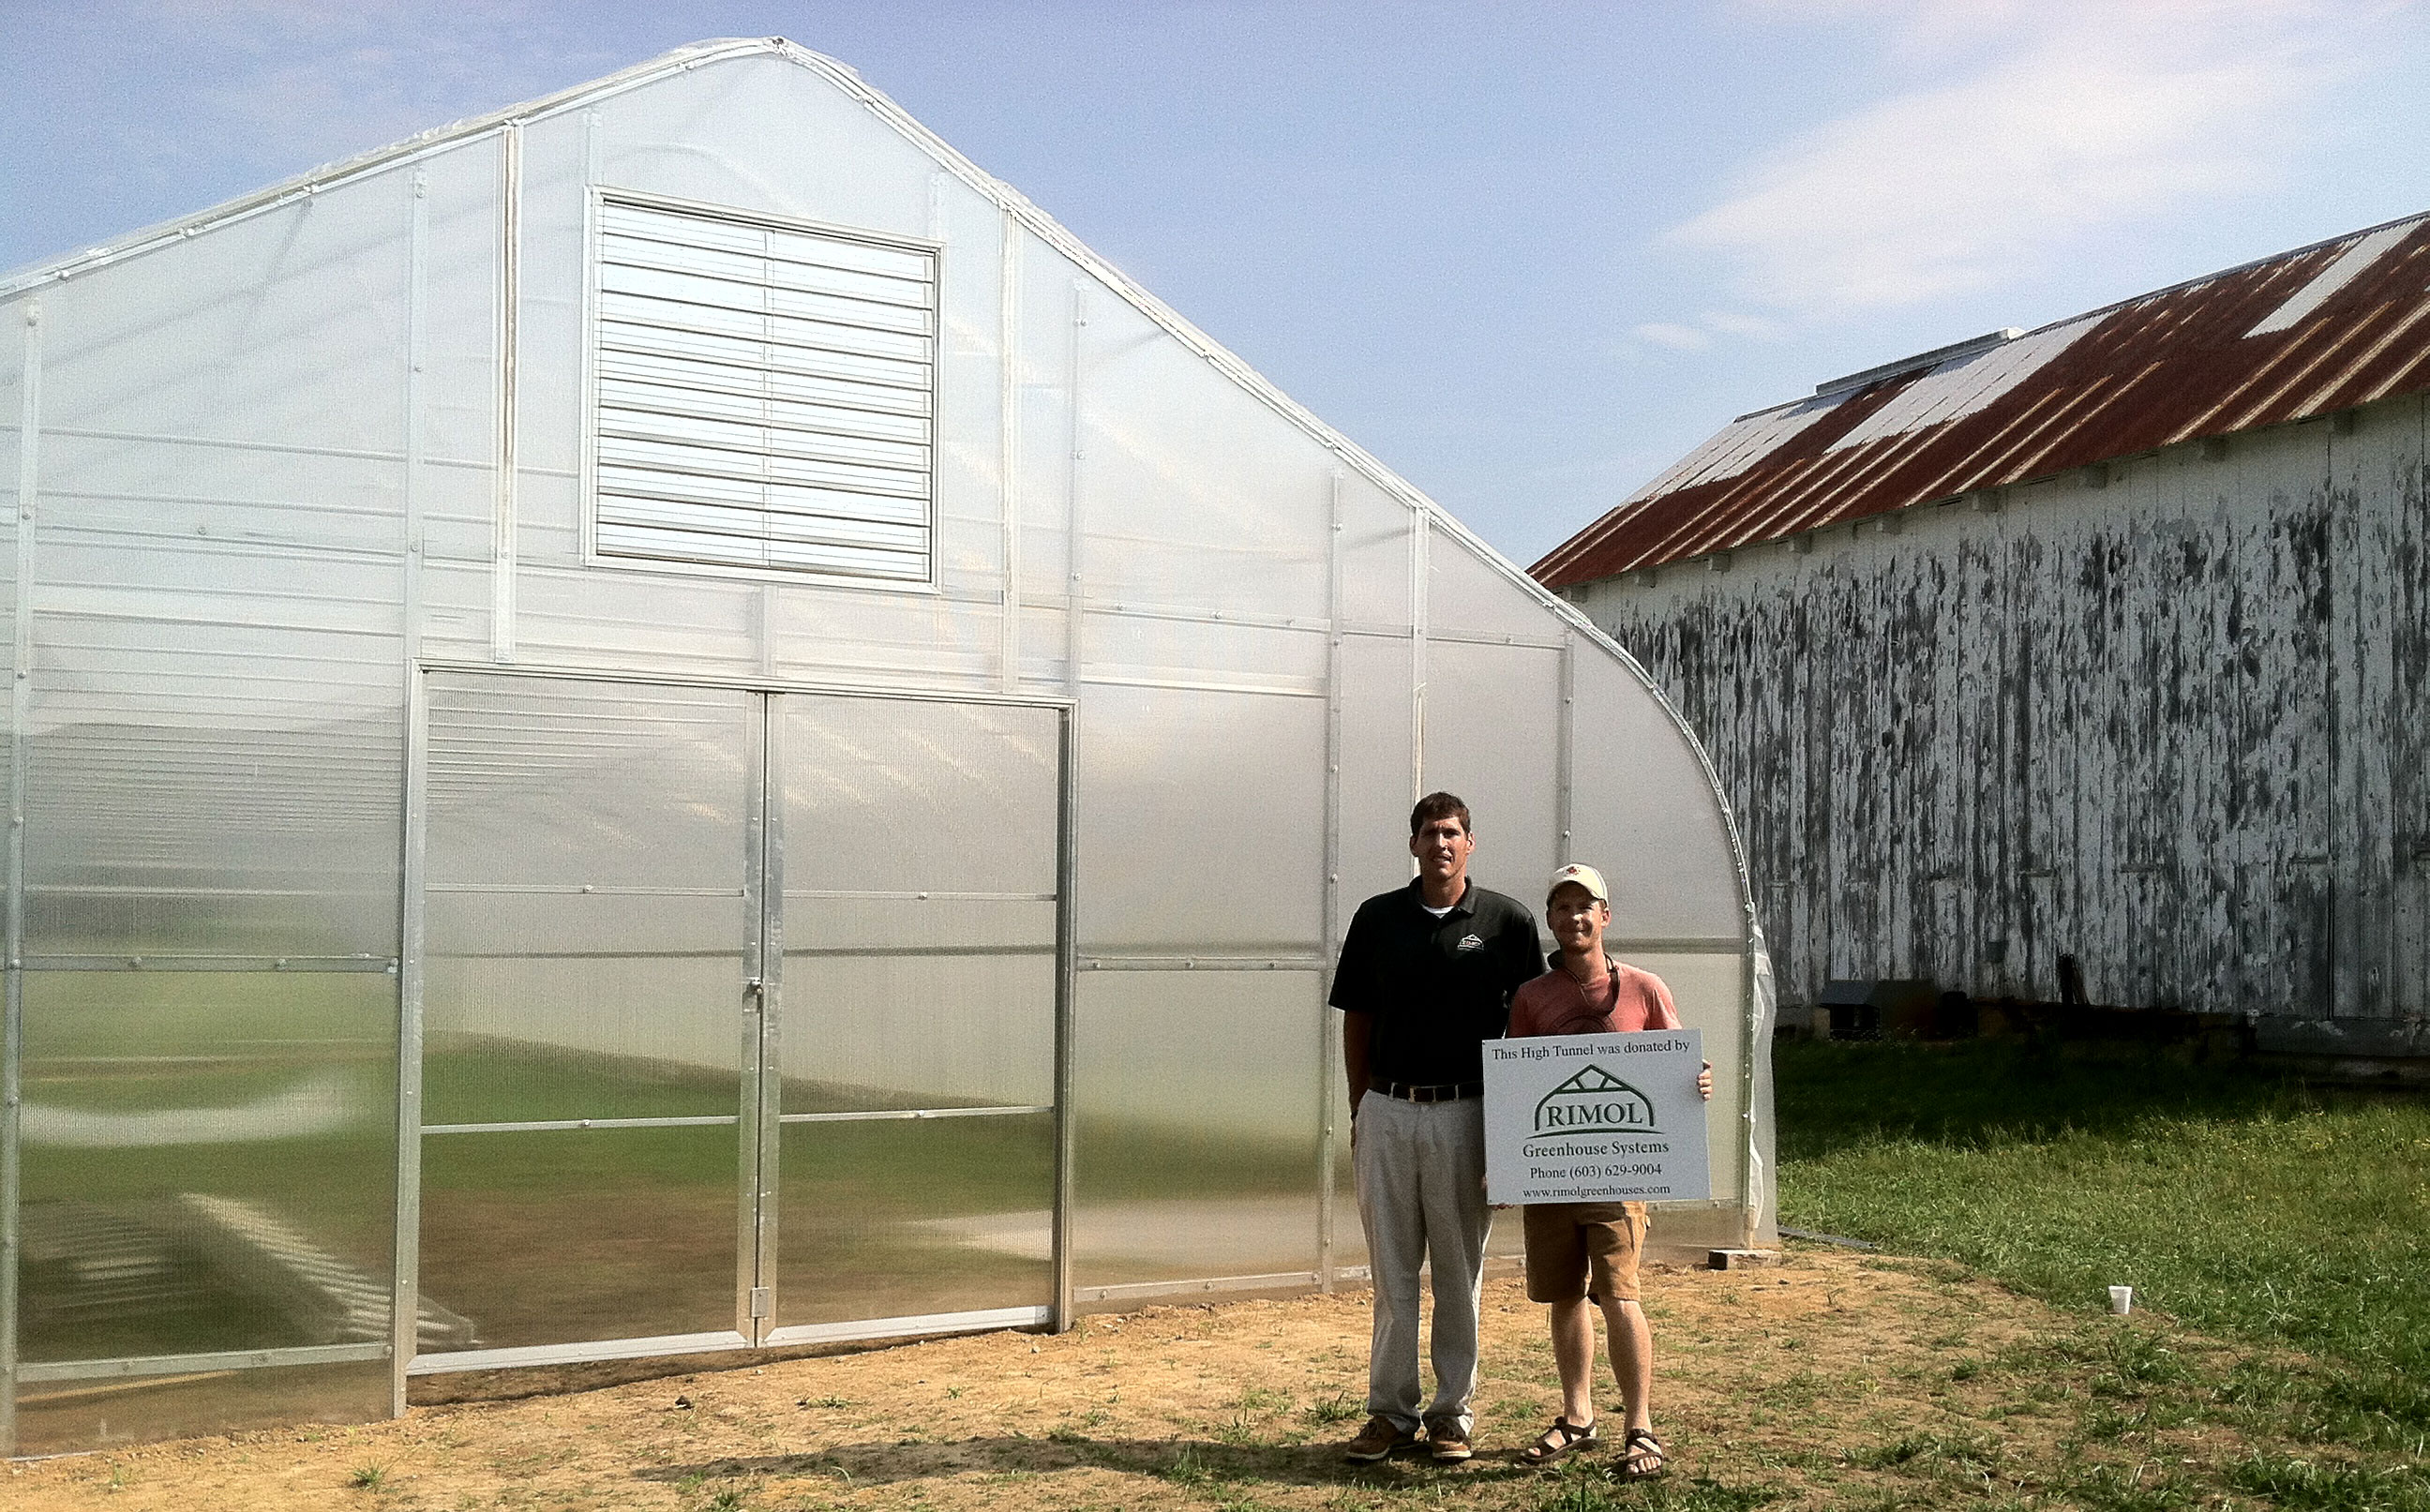 university of maryland dining services receives greenhouse donation from rimol greenhouse systems - Rimol Greenhouse Of Photos